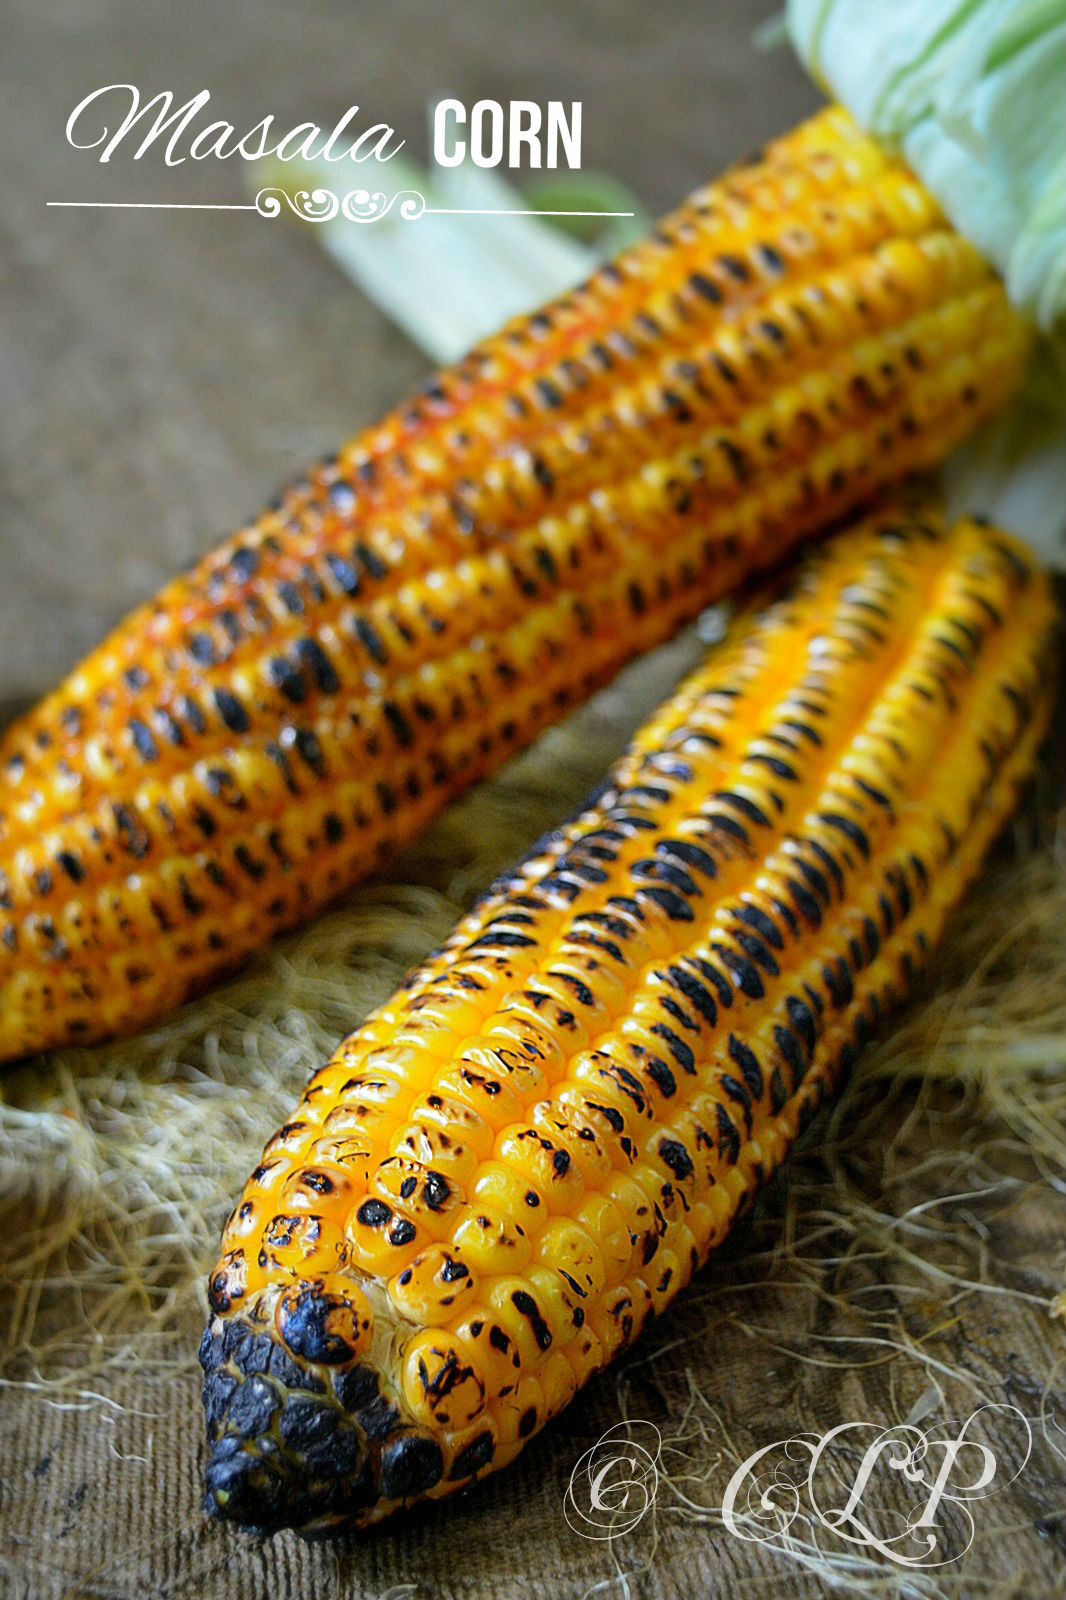 Roasted Masala Corn Chennai Beach Food | Spicy Corn on the cob with video